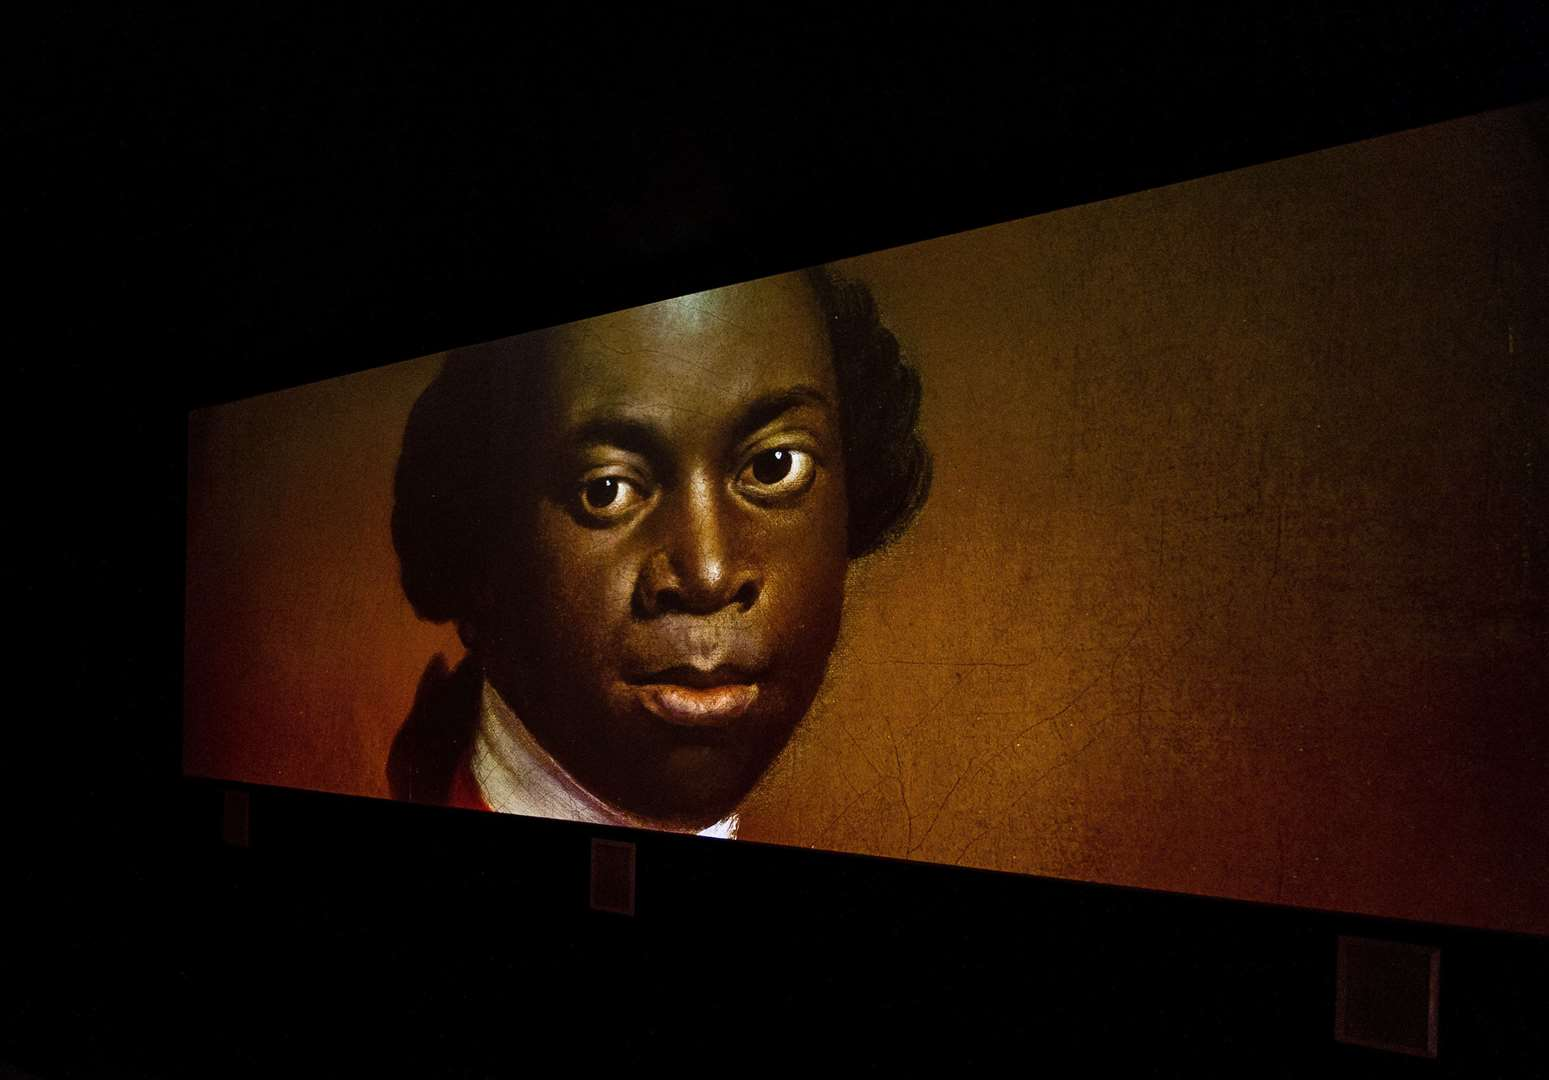 A photo of Olaudah Equiano from a play at The Historic Dockyard in Chatham, Photo: Rikard Osterlund